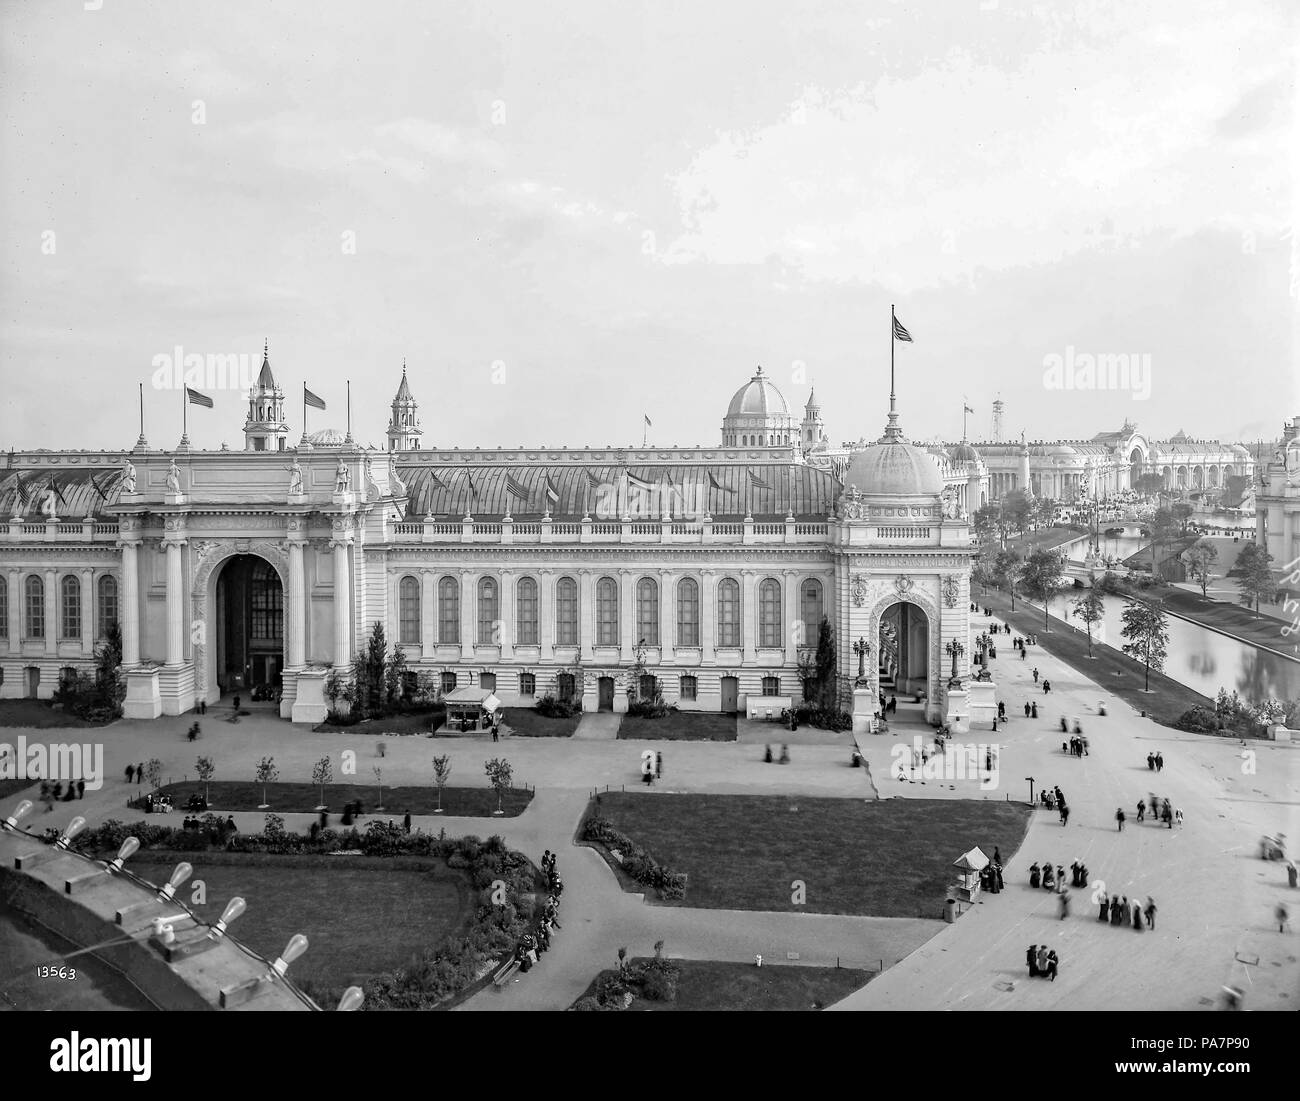 623 Entrance to the Palace of Varied Industries (1904) - Stock Image